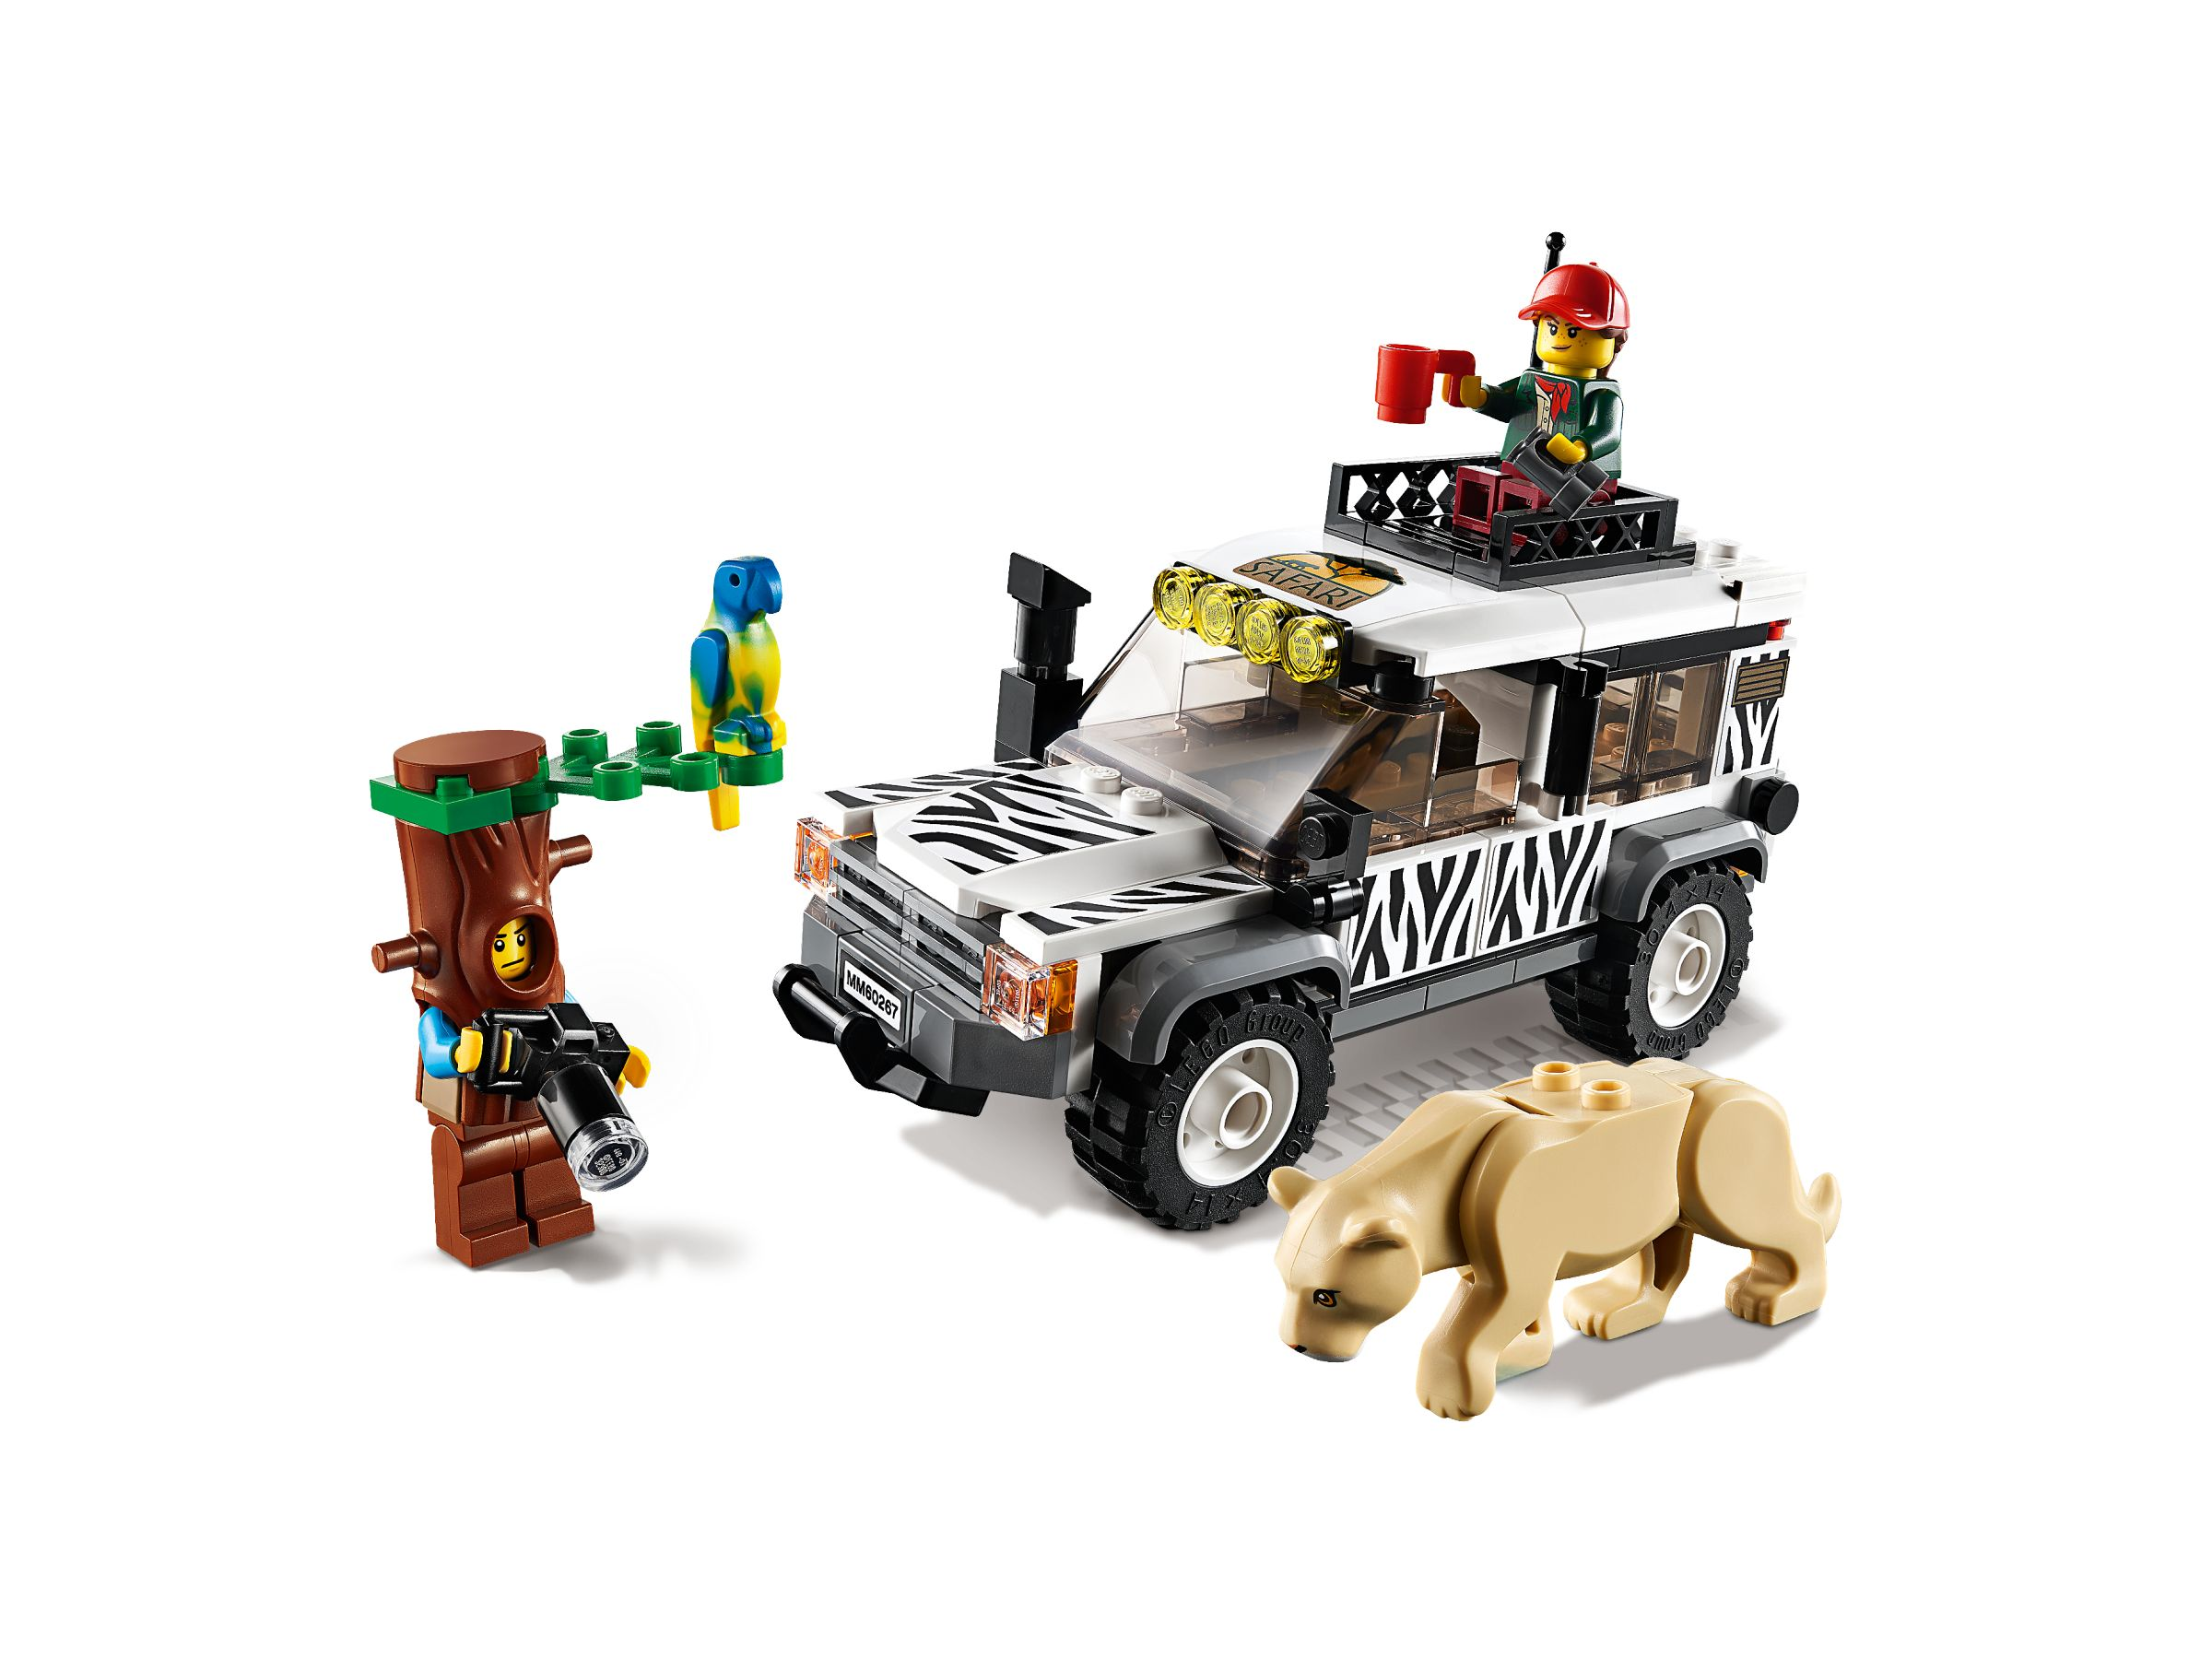 LEGO City 60267 Safari Adventure LEGO_60267_alt2.jpg